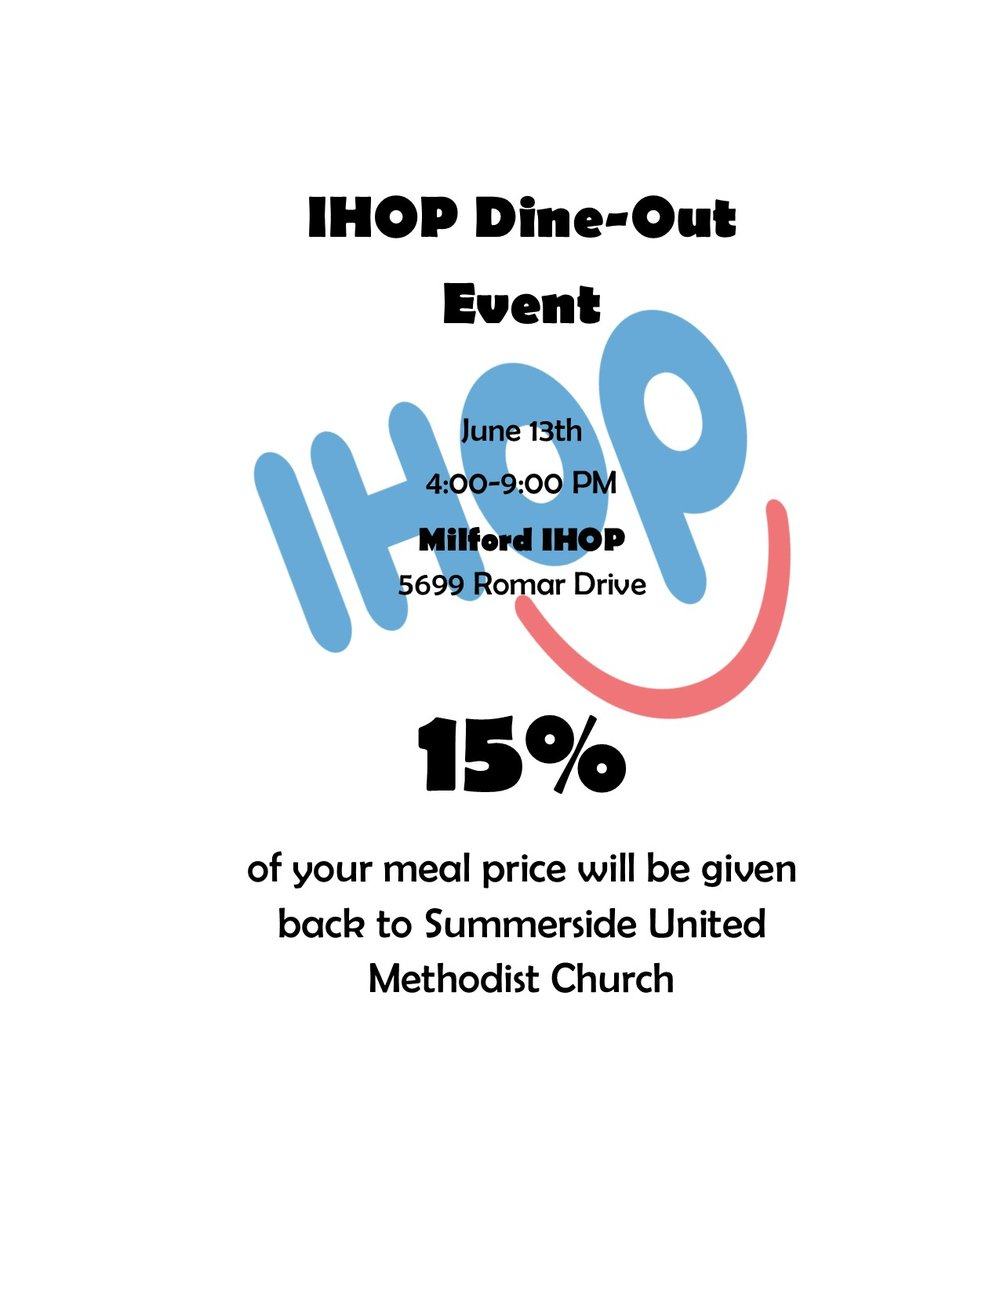 You can print off this image and take it with you to the store or simply let them know you are there to support Summerside UMC.